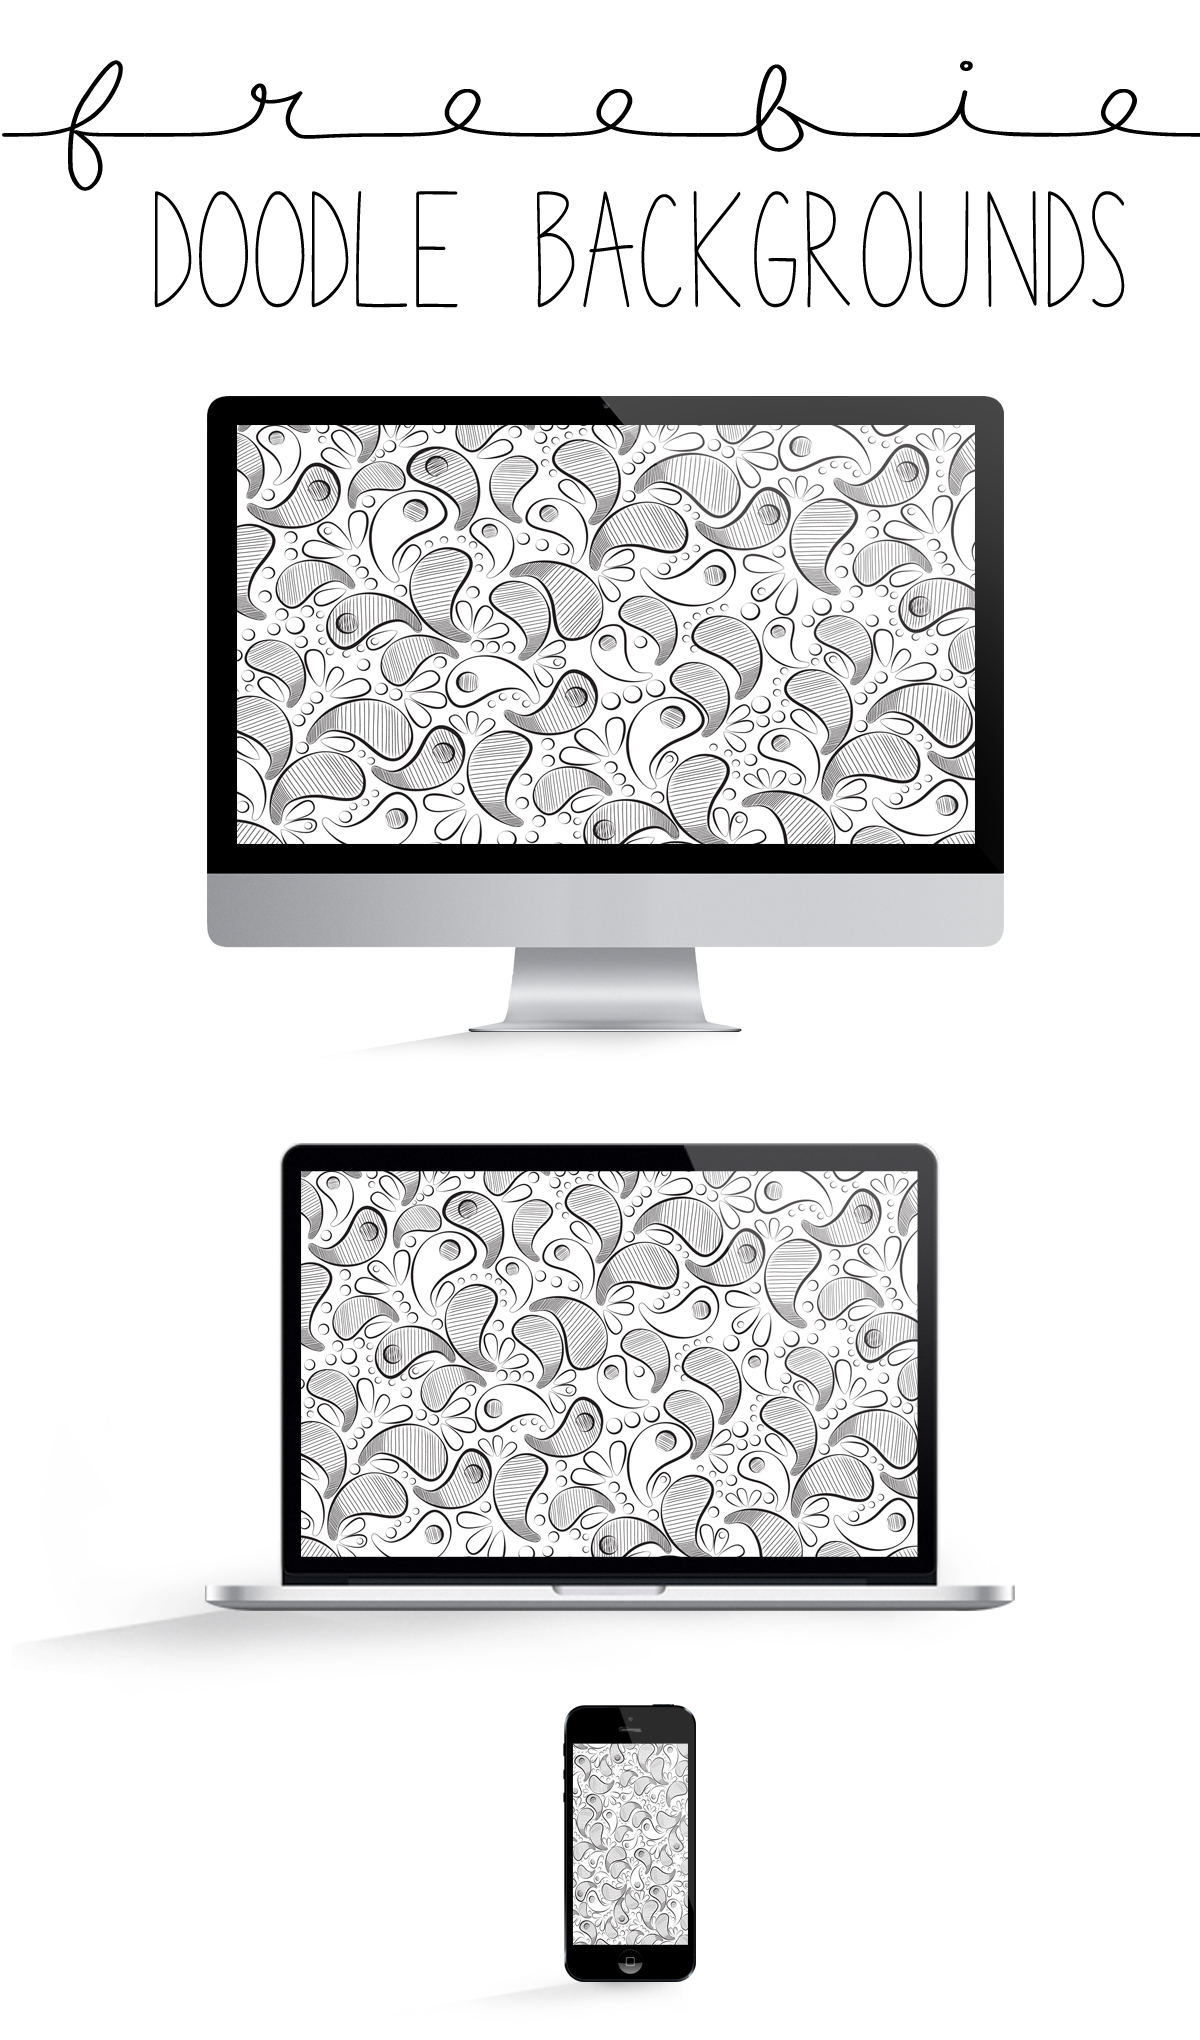 FREE DOODLED TECHNOLOGY BACKGROUNDS FOR COMPUTERS, TABLETS, AND IPHONES | THE PAPER CURATOR